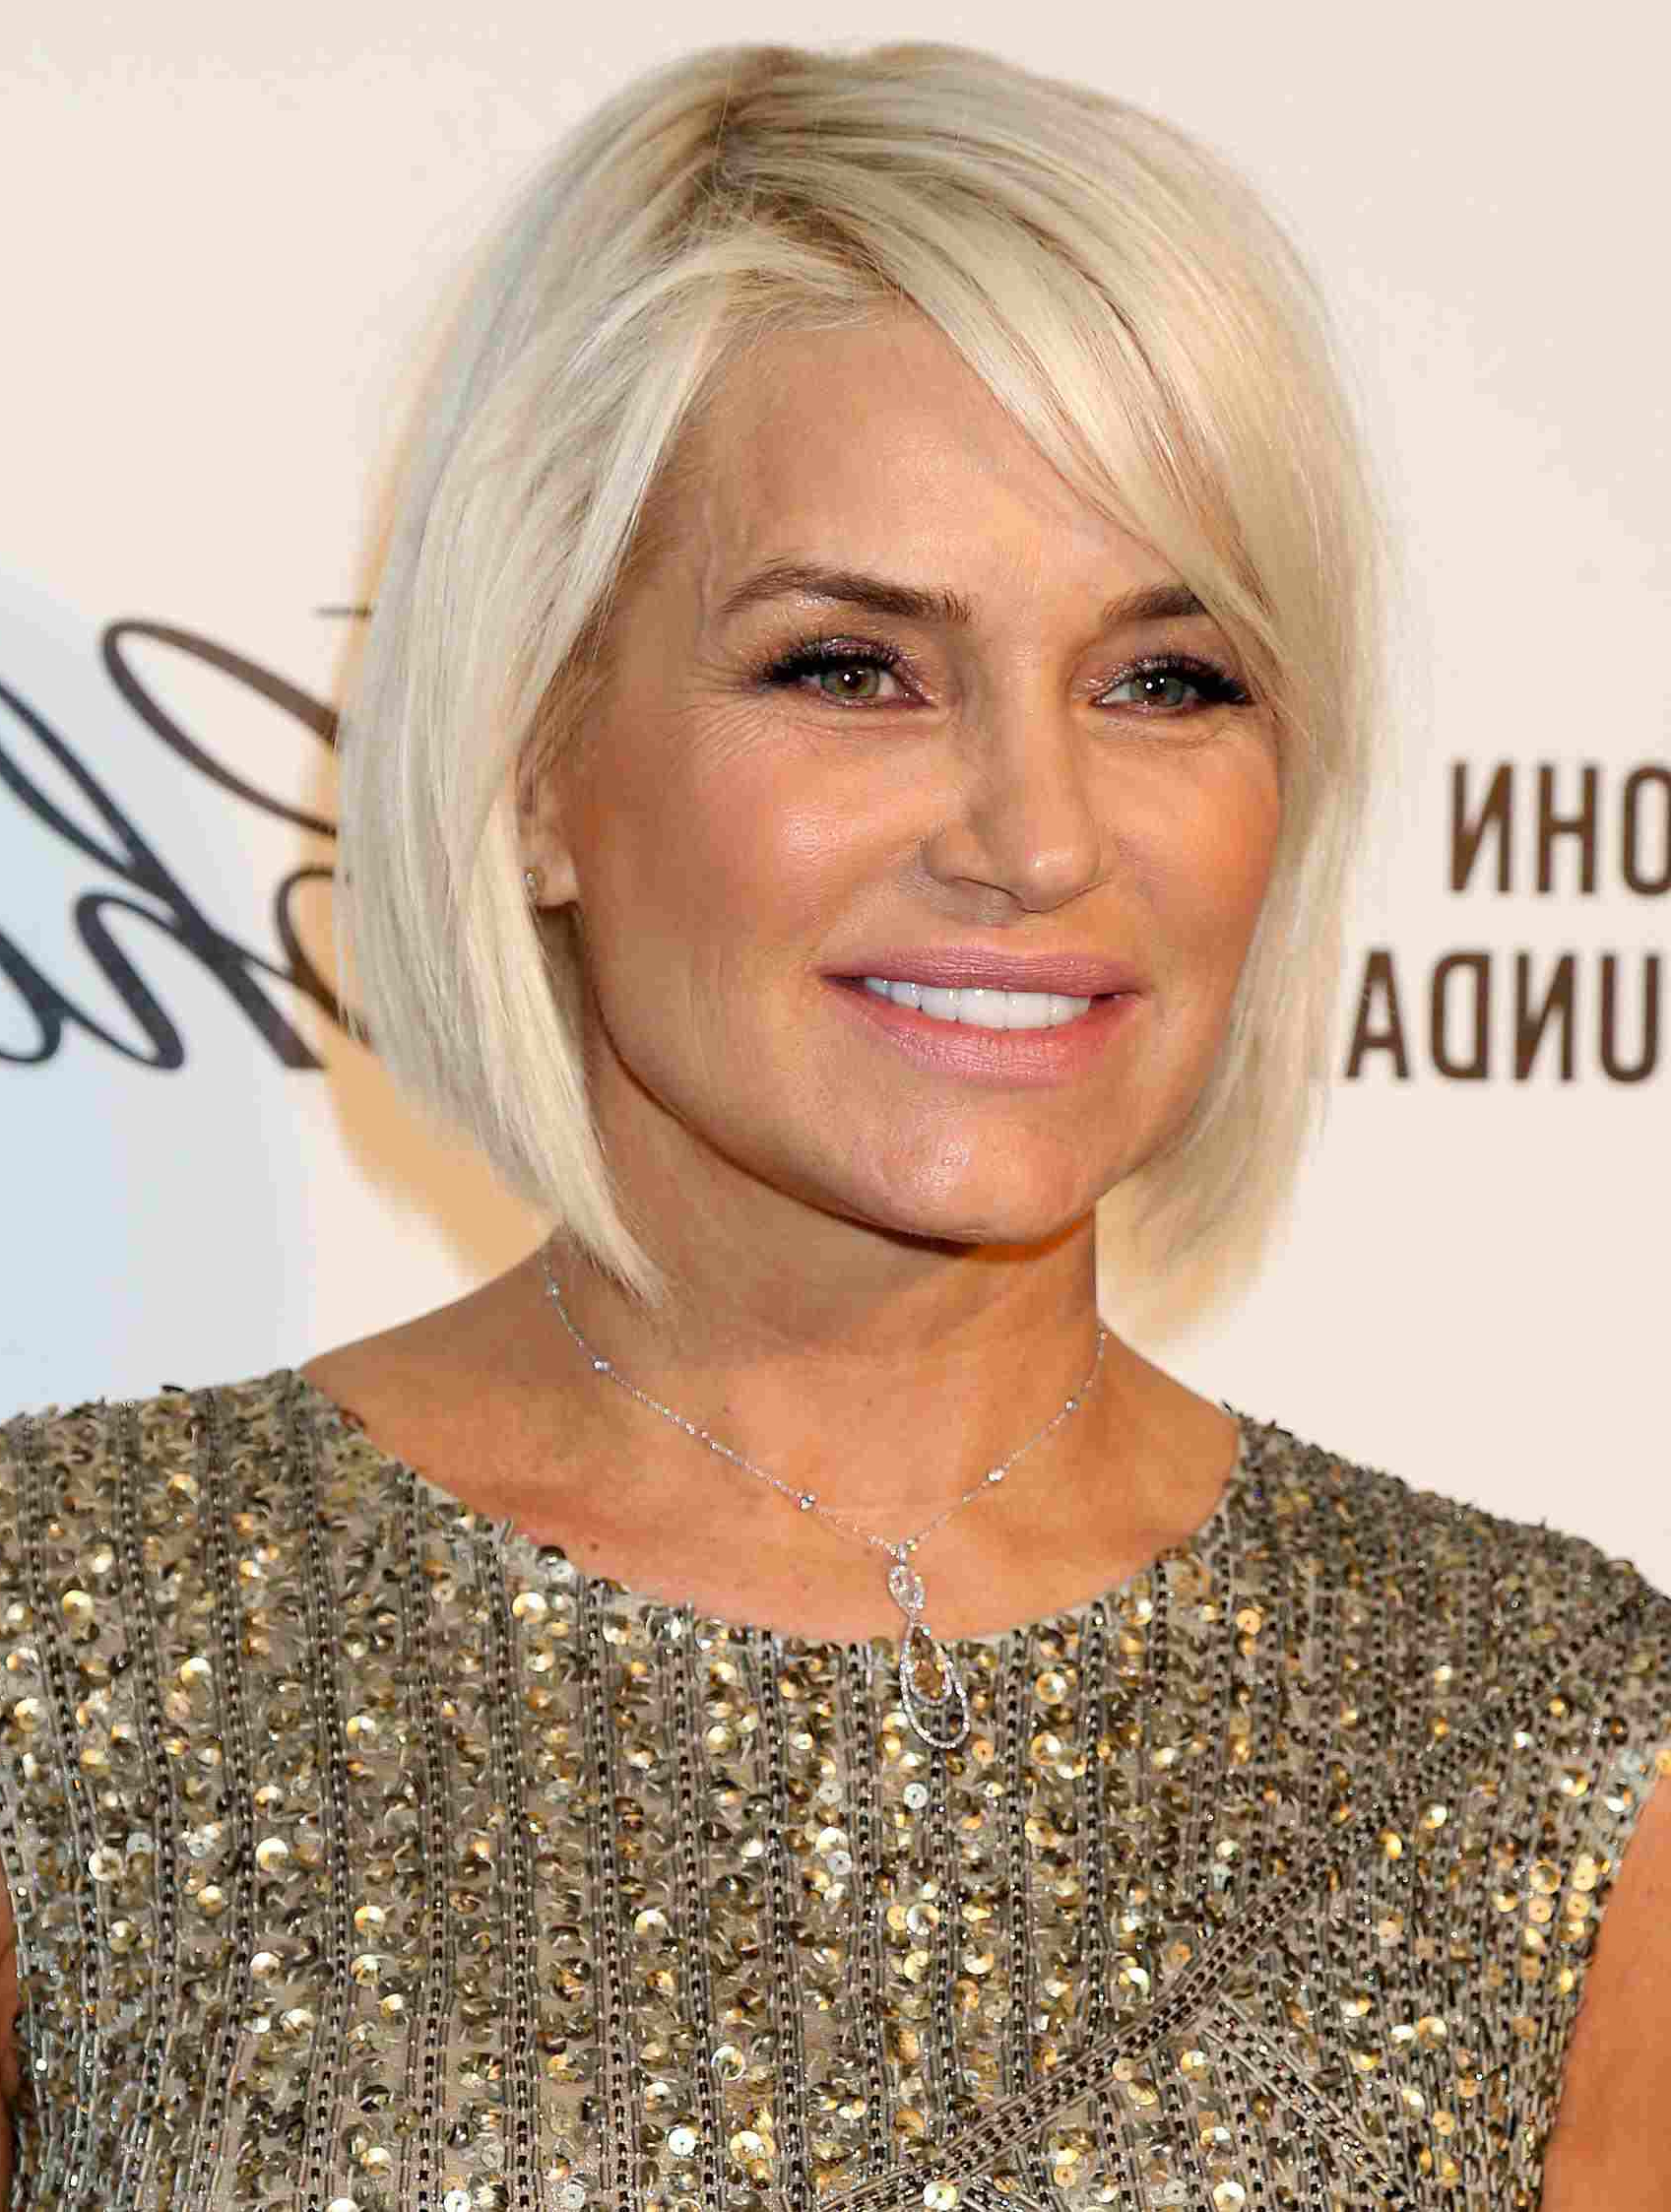 Hairstyles That Make You Look 10 Years Younger With Popular Medium Haircuts To Look Younger (View 15 of 20)